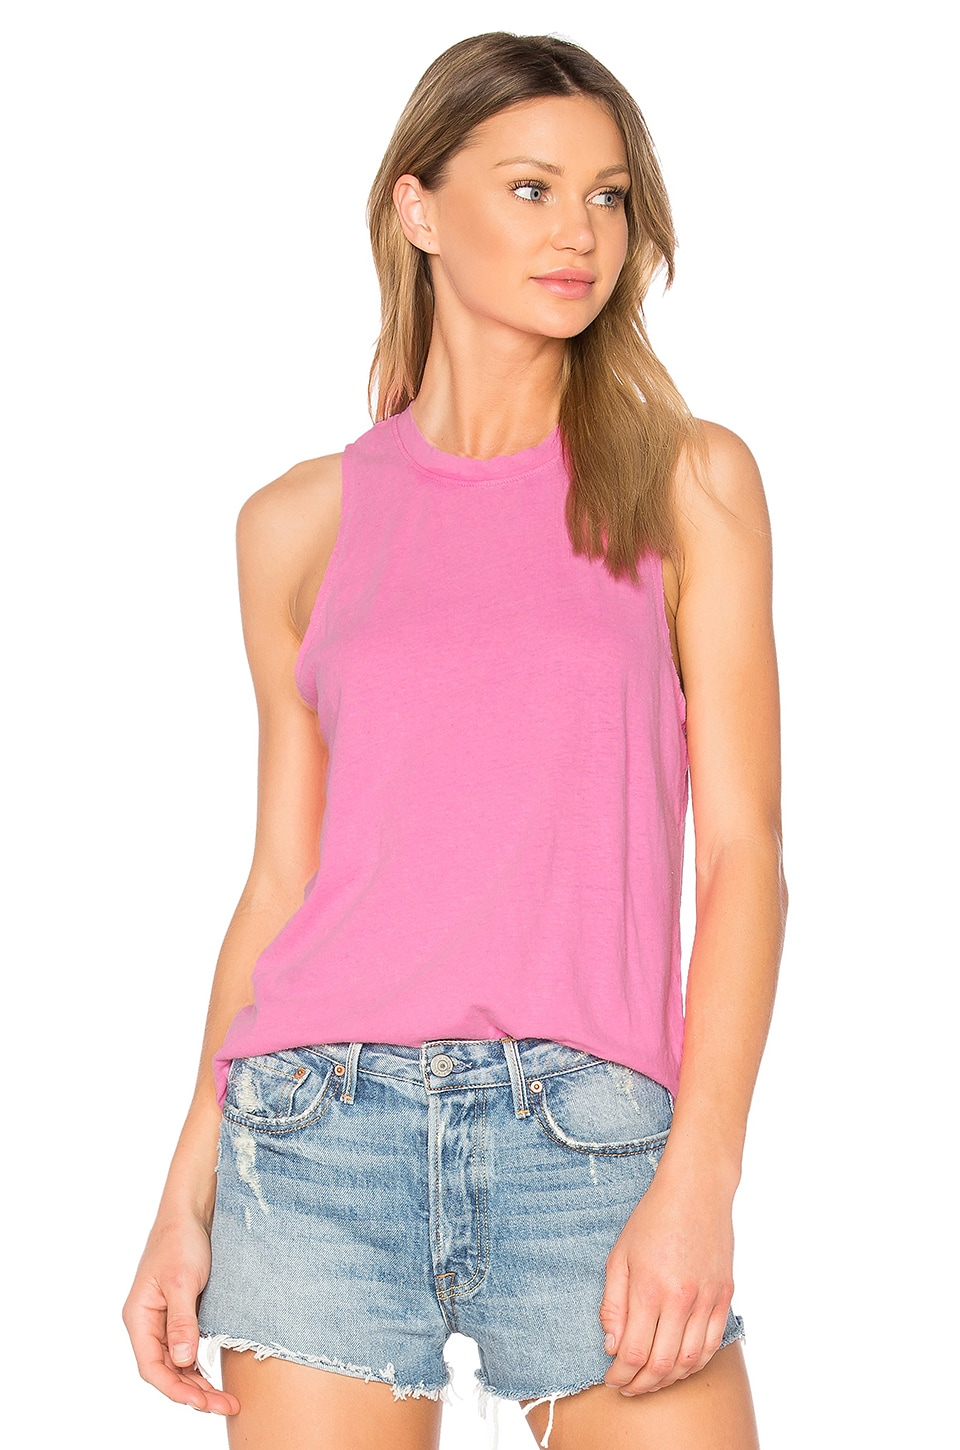 COTTON CITIZEN The Amsterdam Tank in Pink